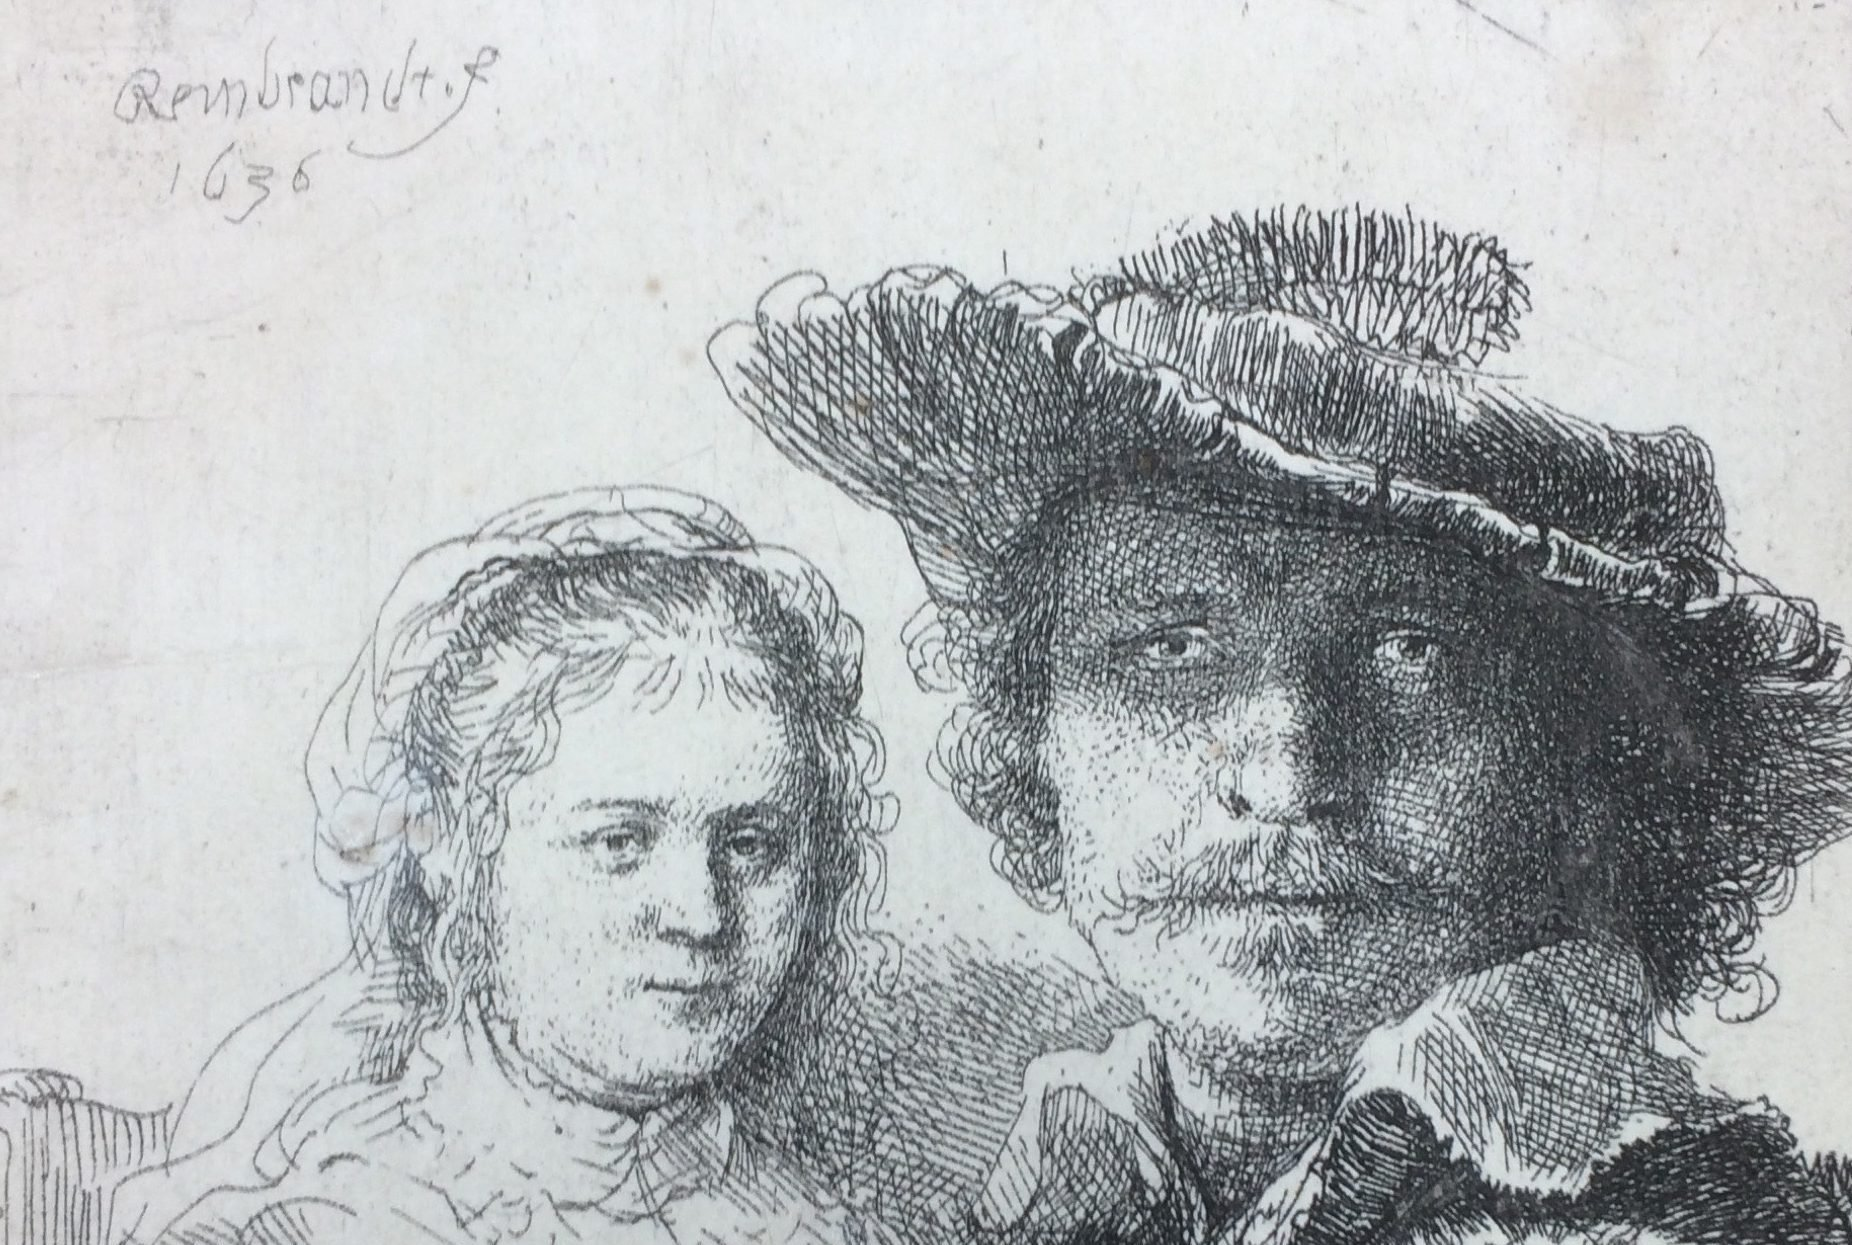 Rembrandt etch from Douwes Fine Art at the FINE art & antiques in Baarn